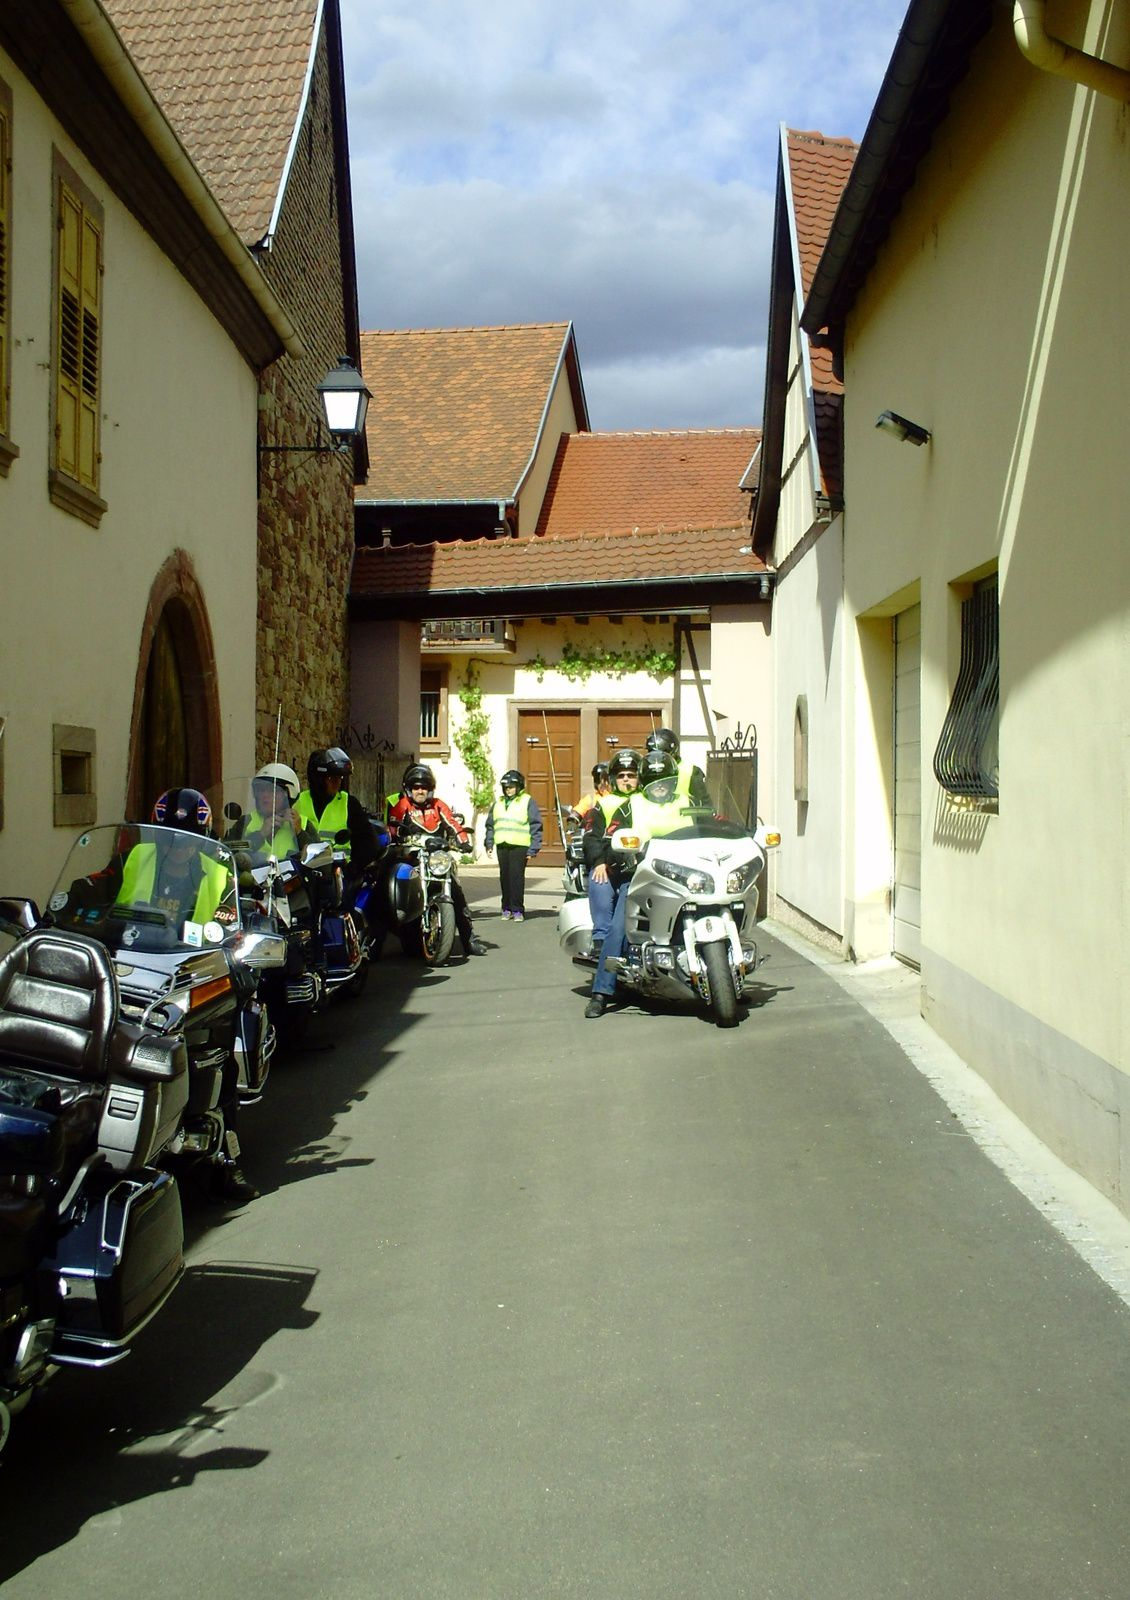 ALLEZ LES MOTARDS EN PLACE